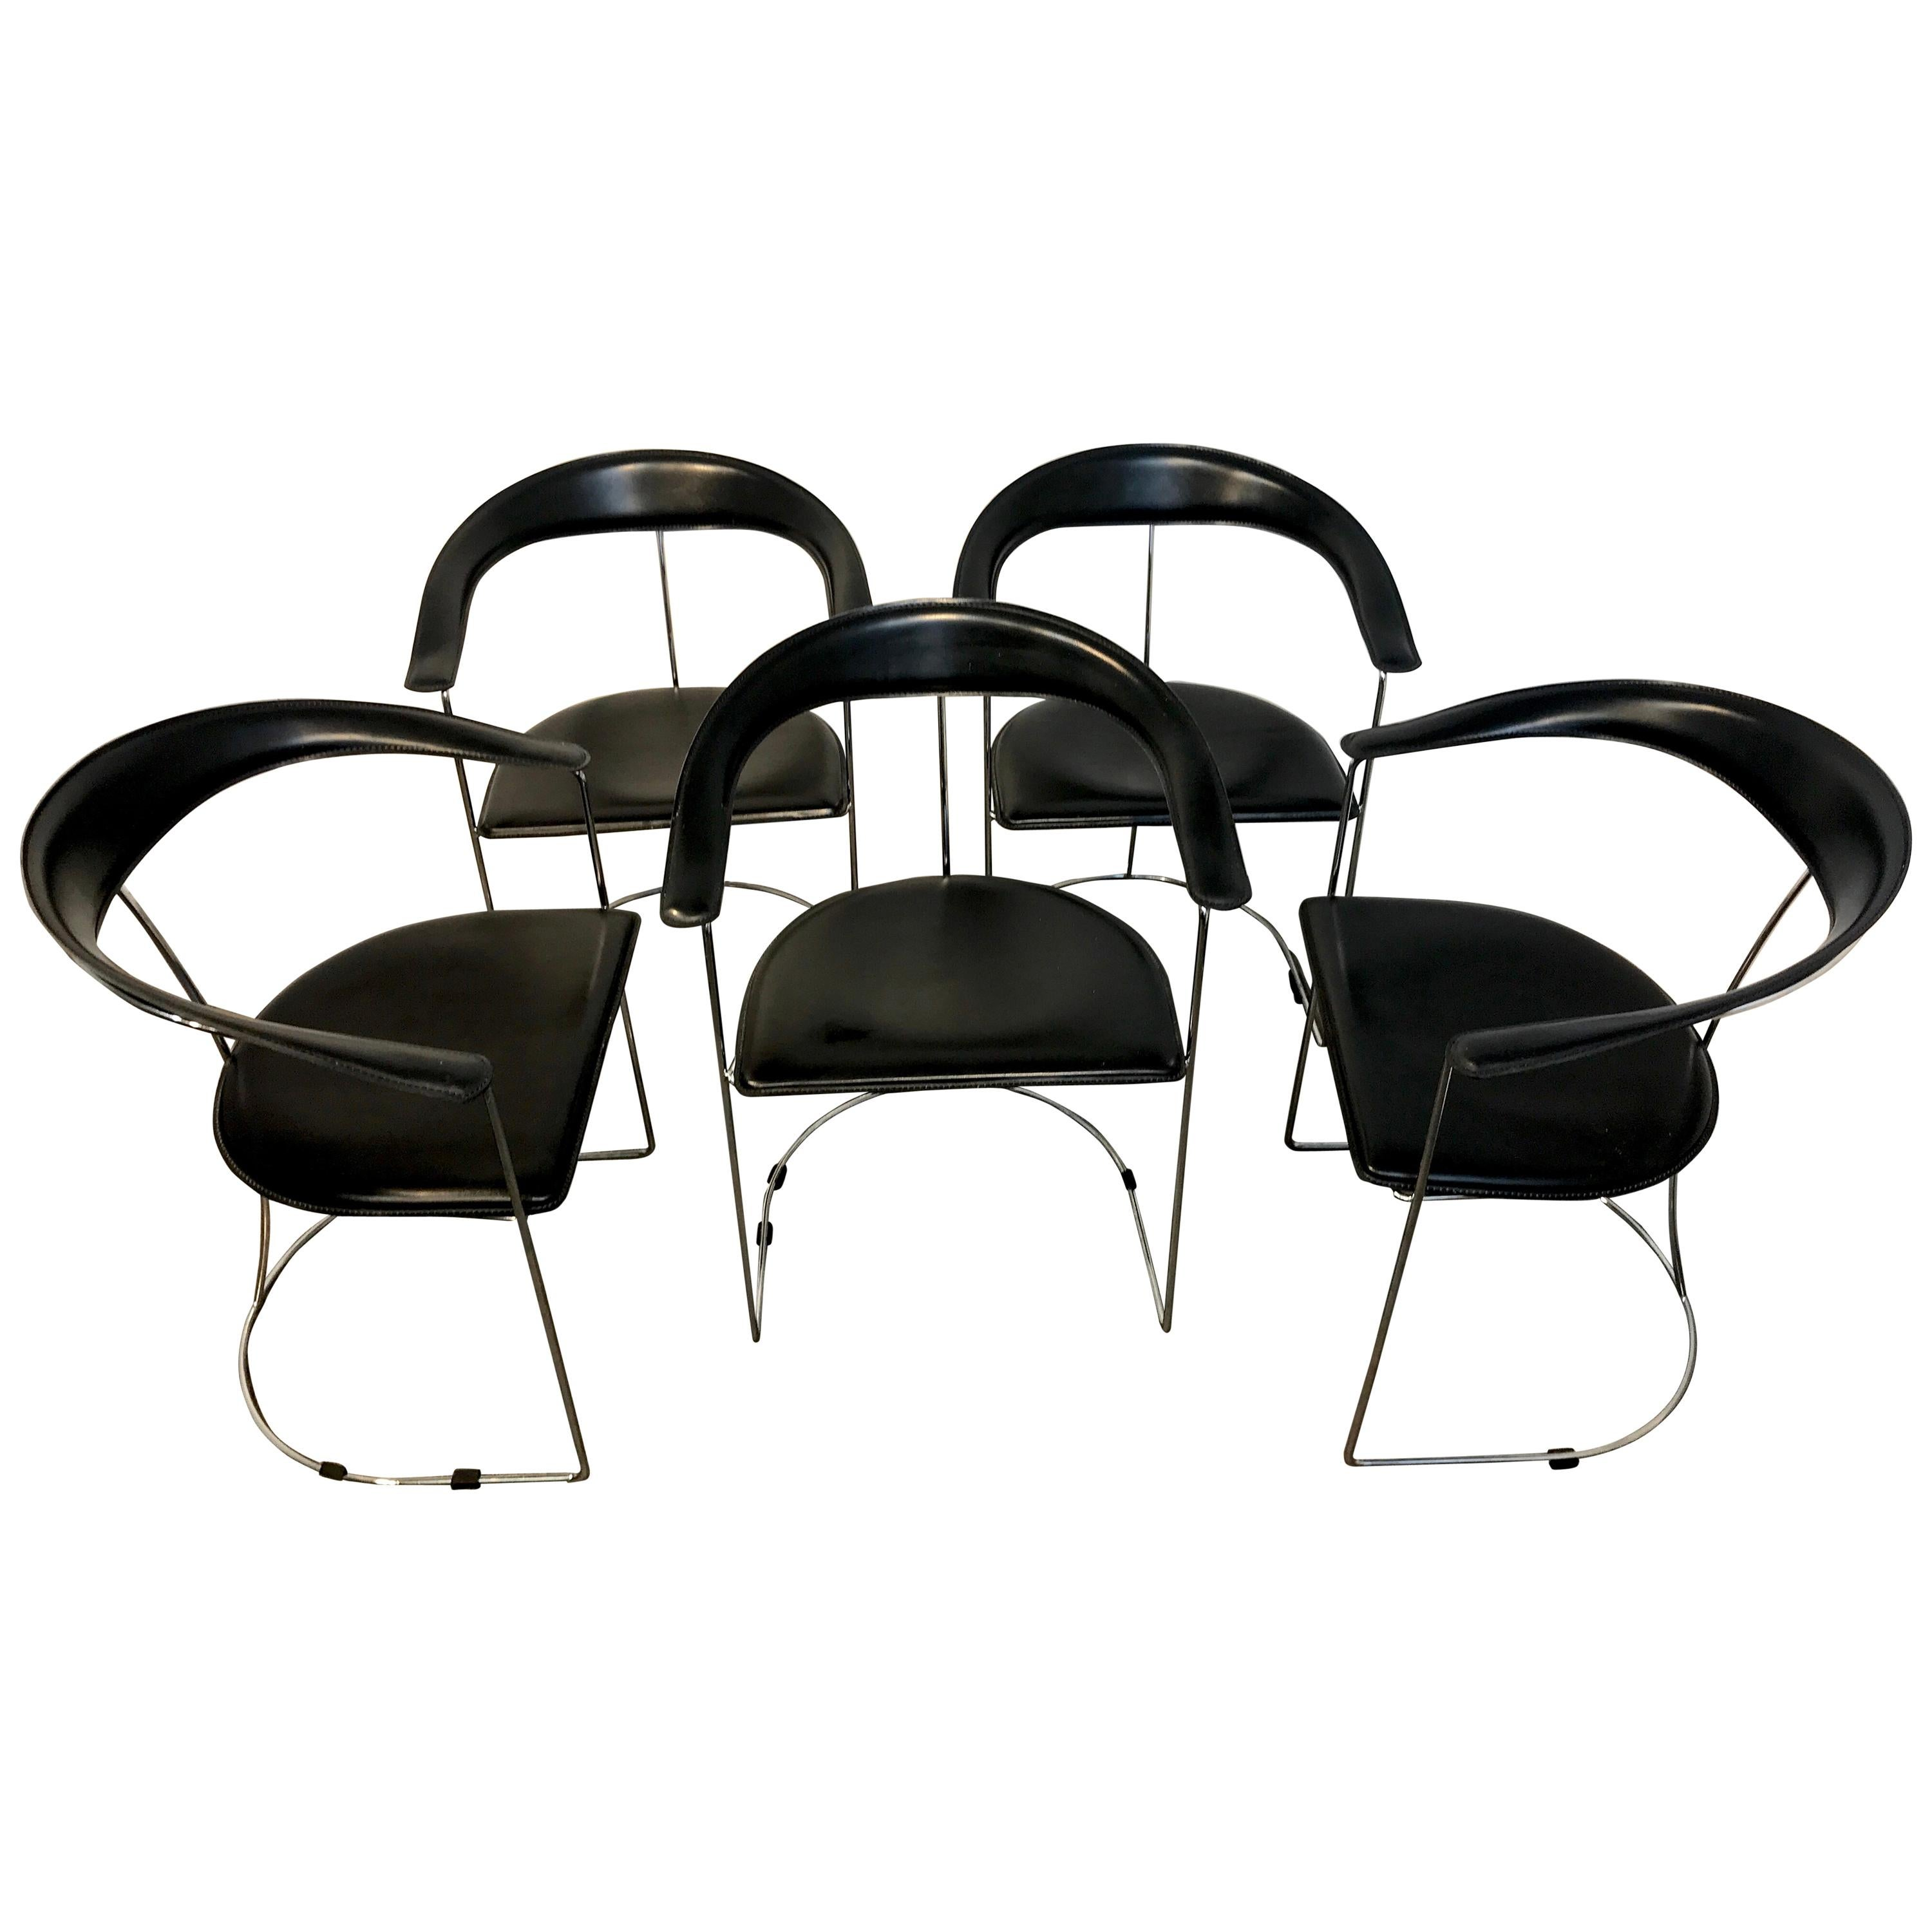 Five Italian Chrome and Black Leather Cantilever Armchairs, Handmade by Frag